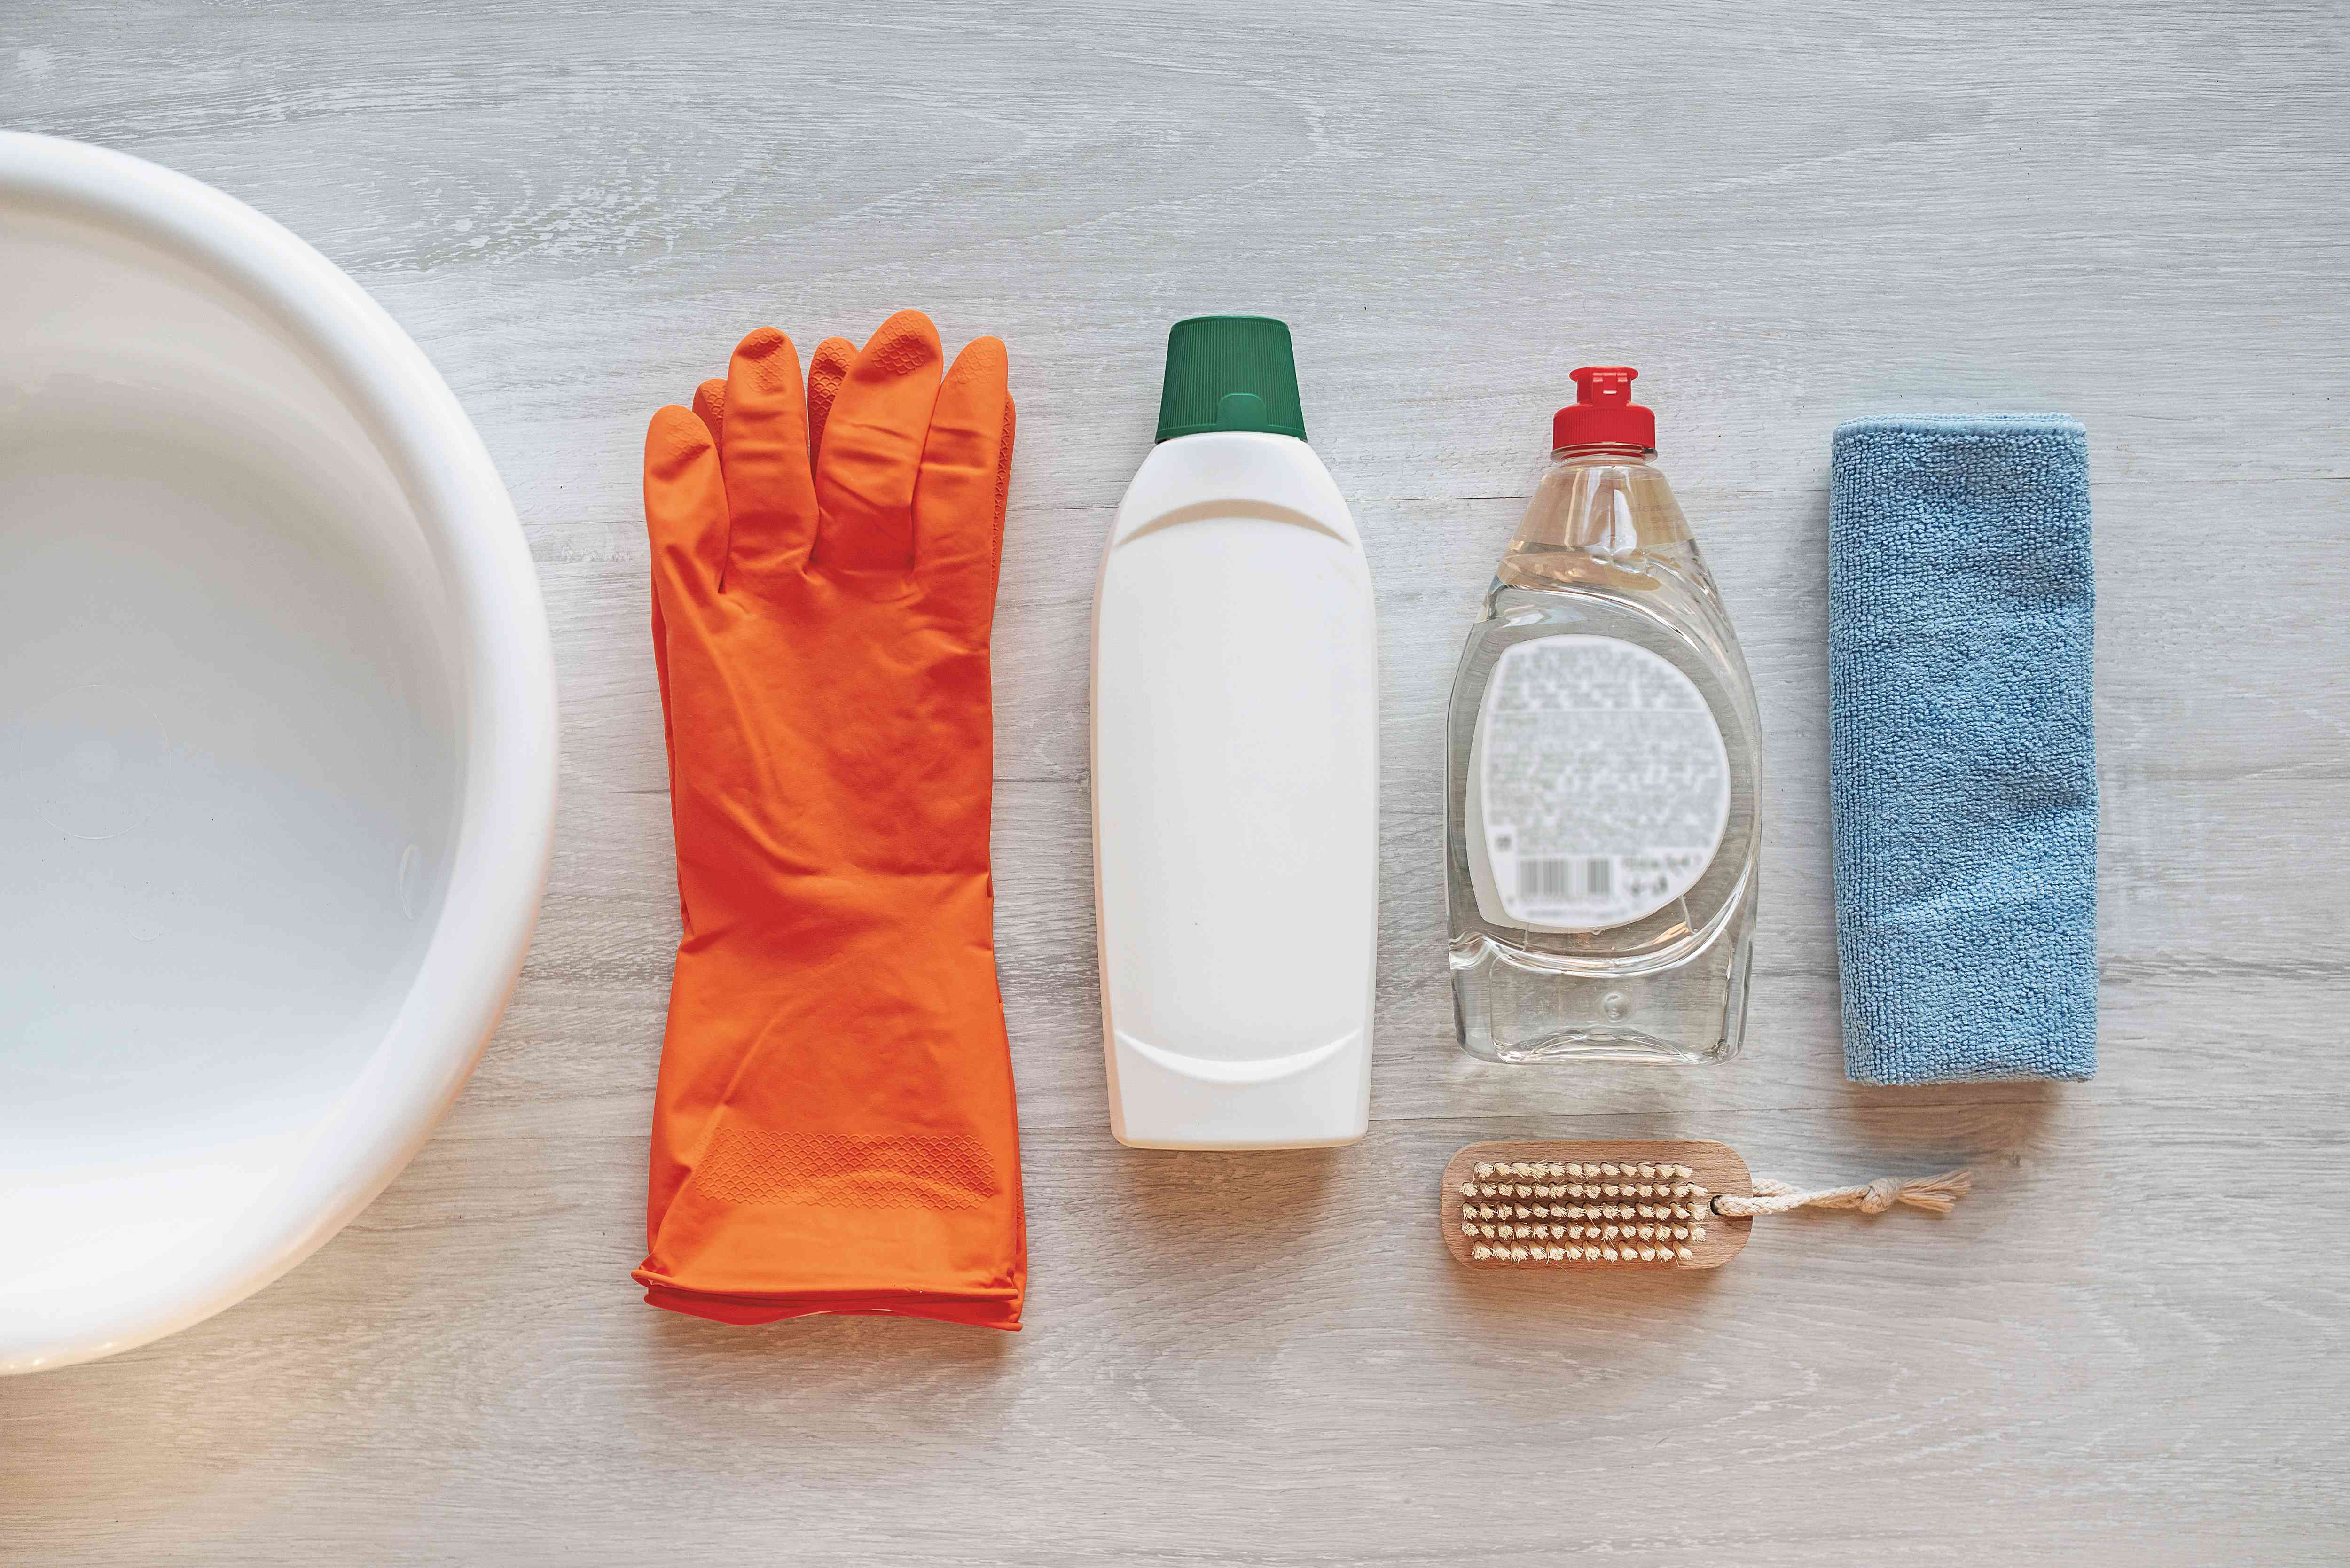 materials for cleaning upholstery